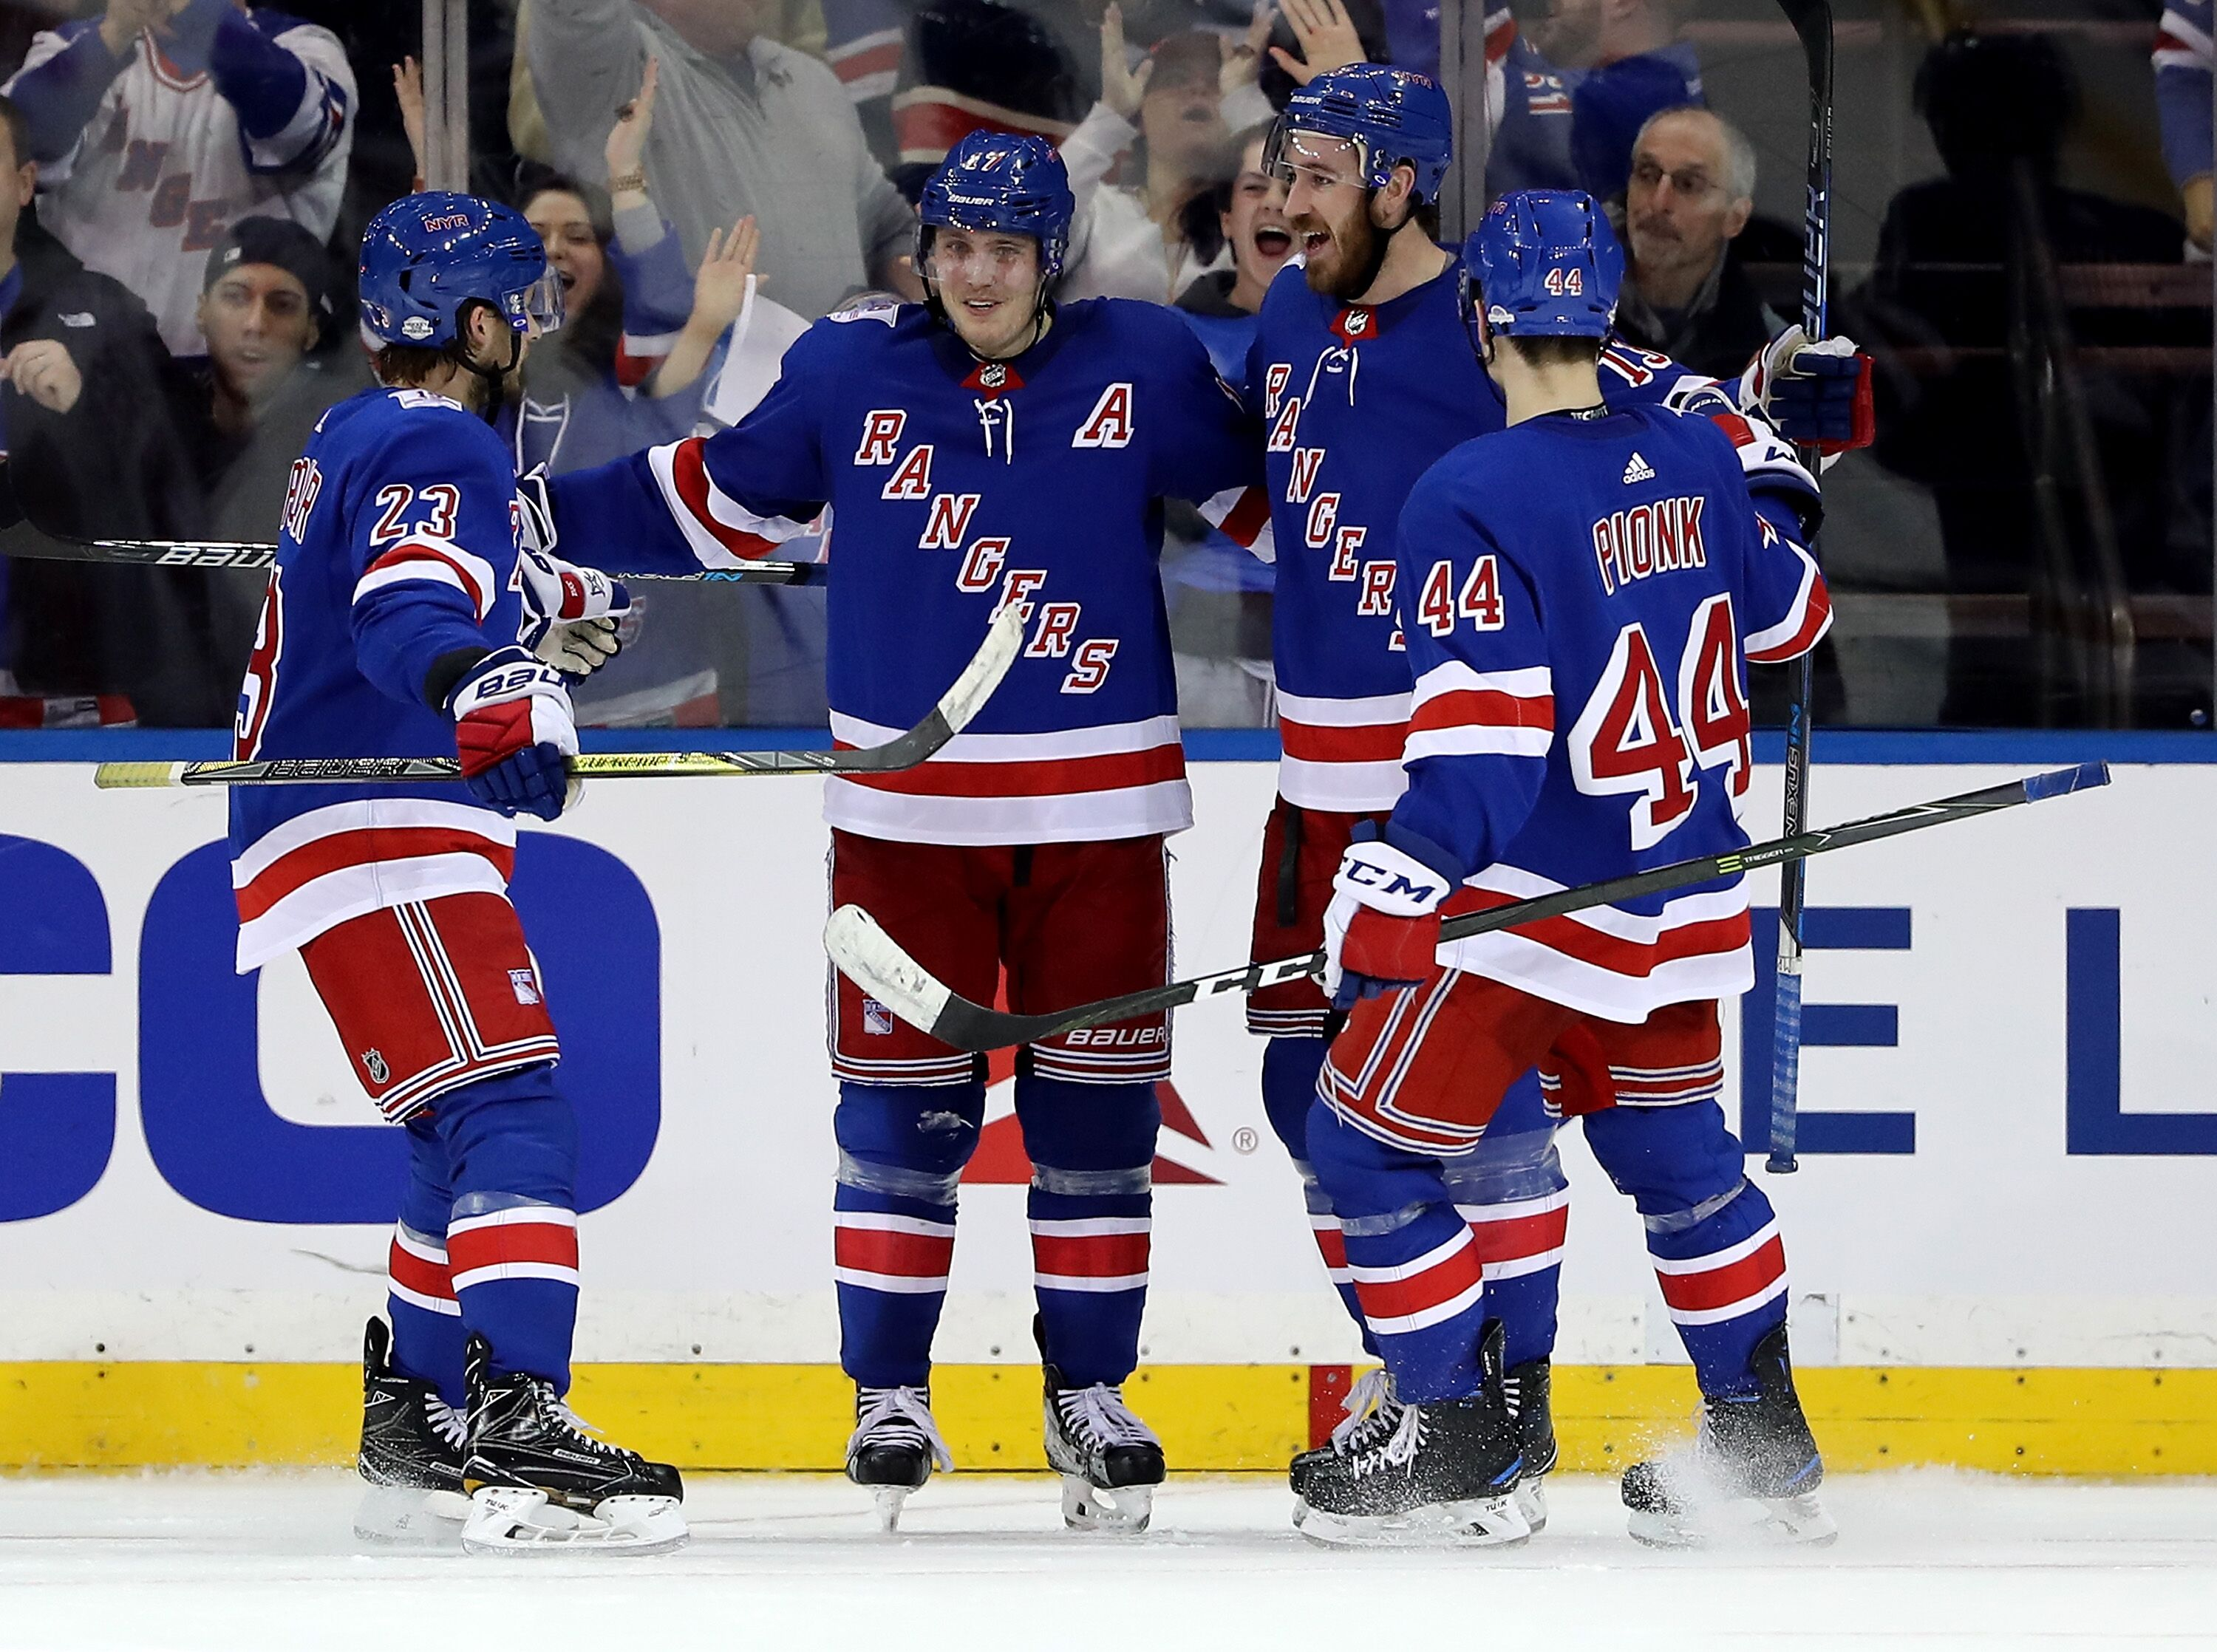 New York Rangers: Finding a second power play unit